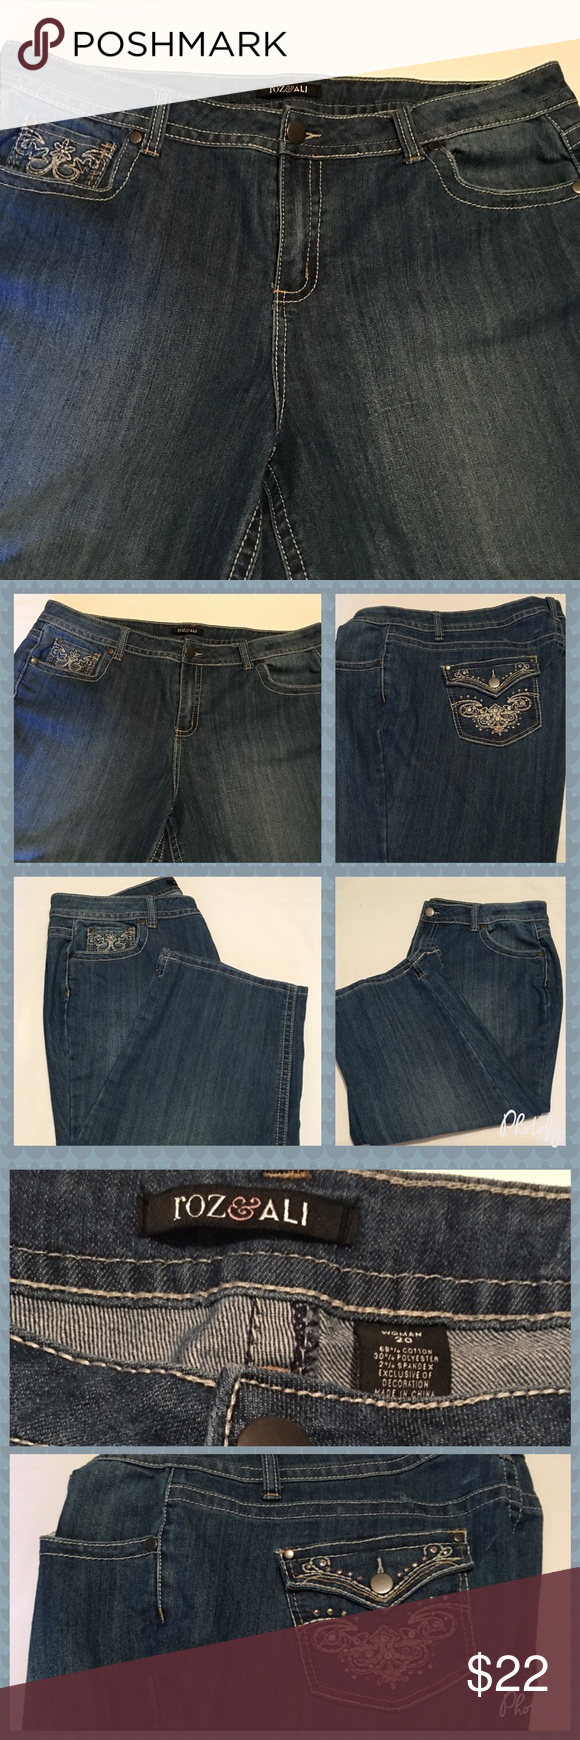 Women's Rozi & Ali Jeans With Rhinestones Size 20W Women's Rozi & Ali Jeans With Rhinestones Size 20W. Never worn too big for me. Rozi & Ali Jeans Straight Leg